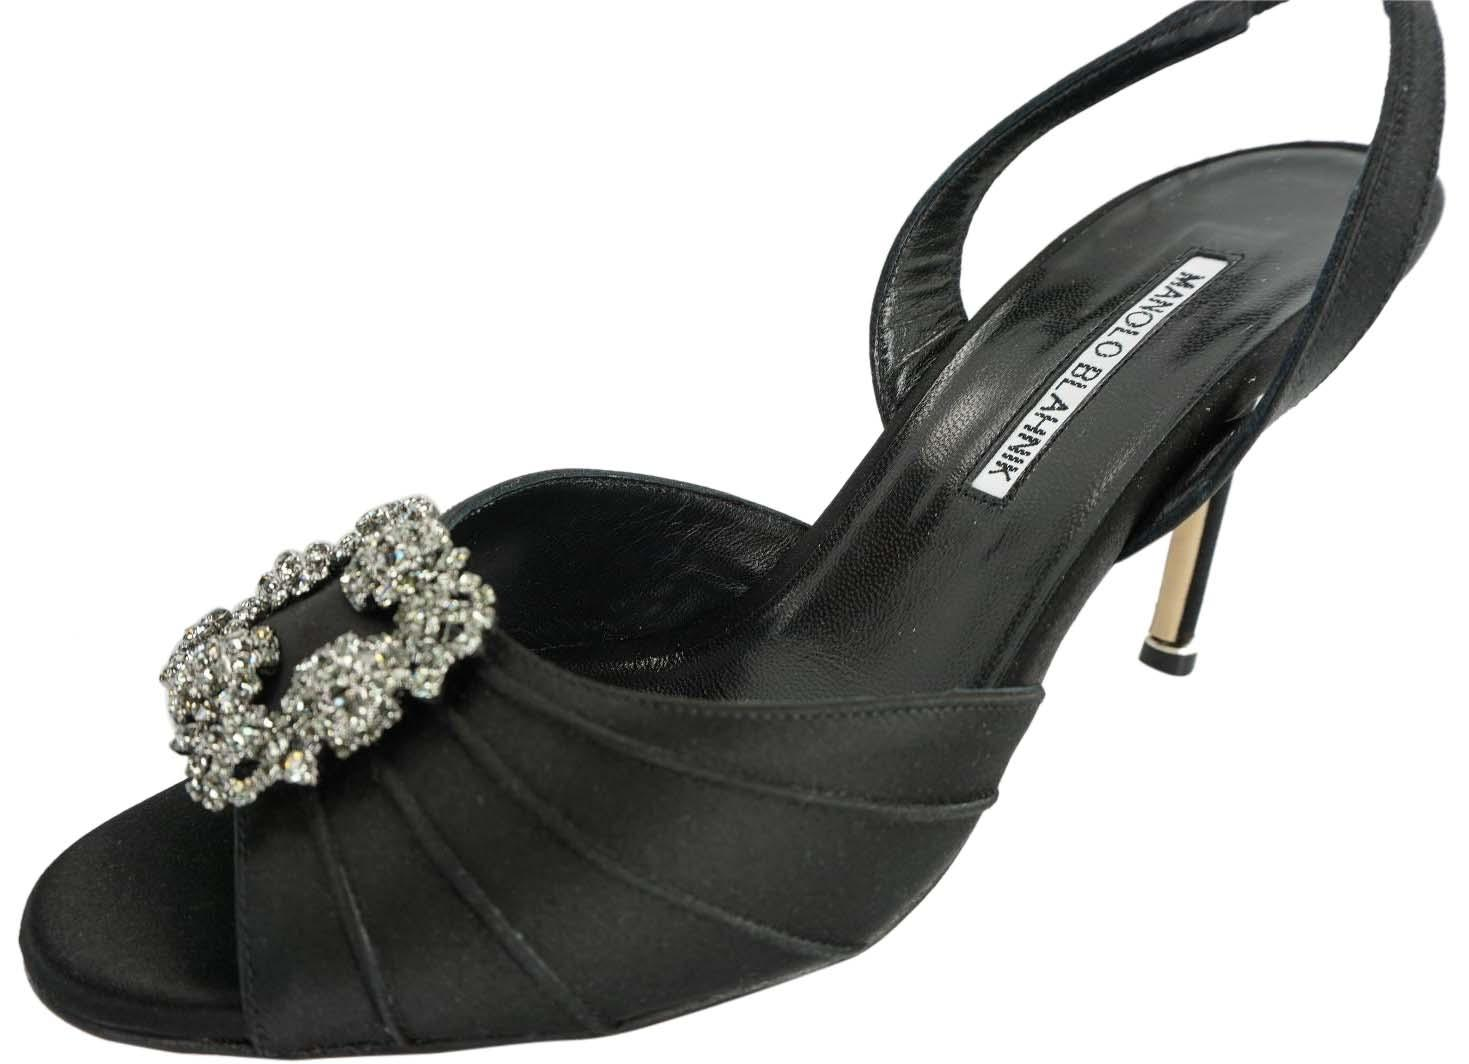 Manolo Blahnik Black Satin Cassia Jewel Slingback Peep Toe Sandals Formal Shoes Size EU 38 (Approx. US 8) Regular (M, B)